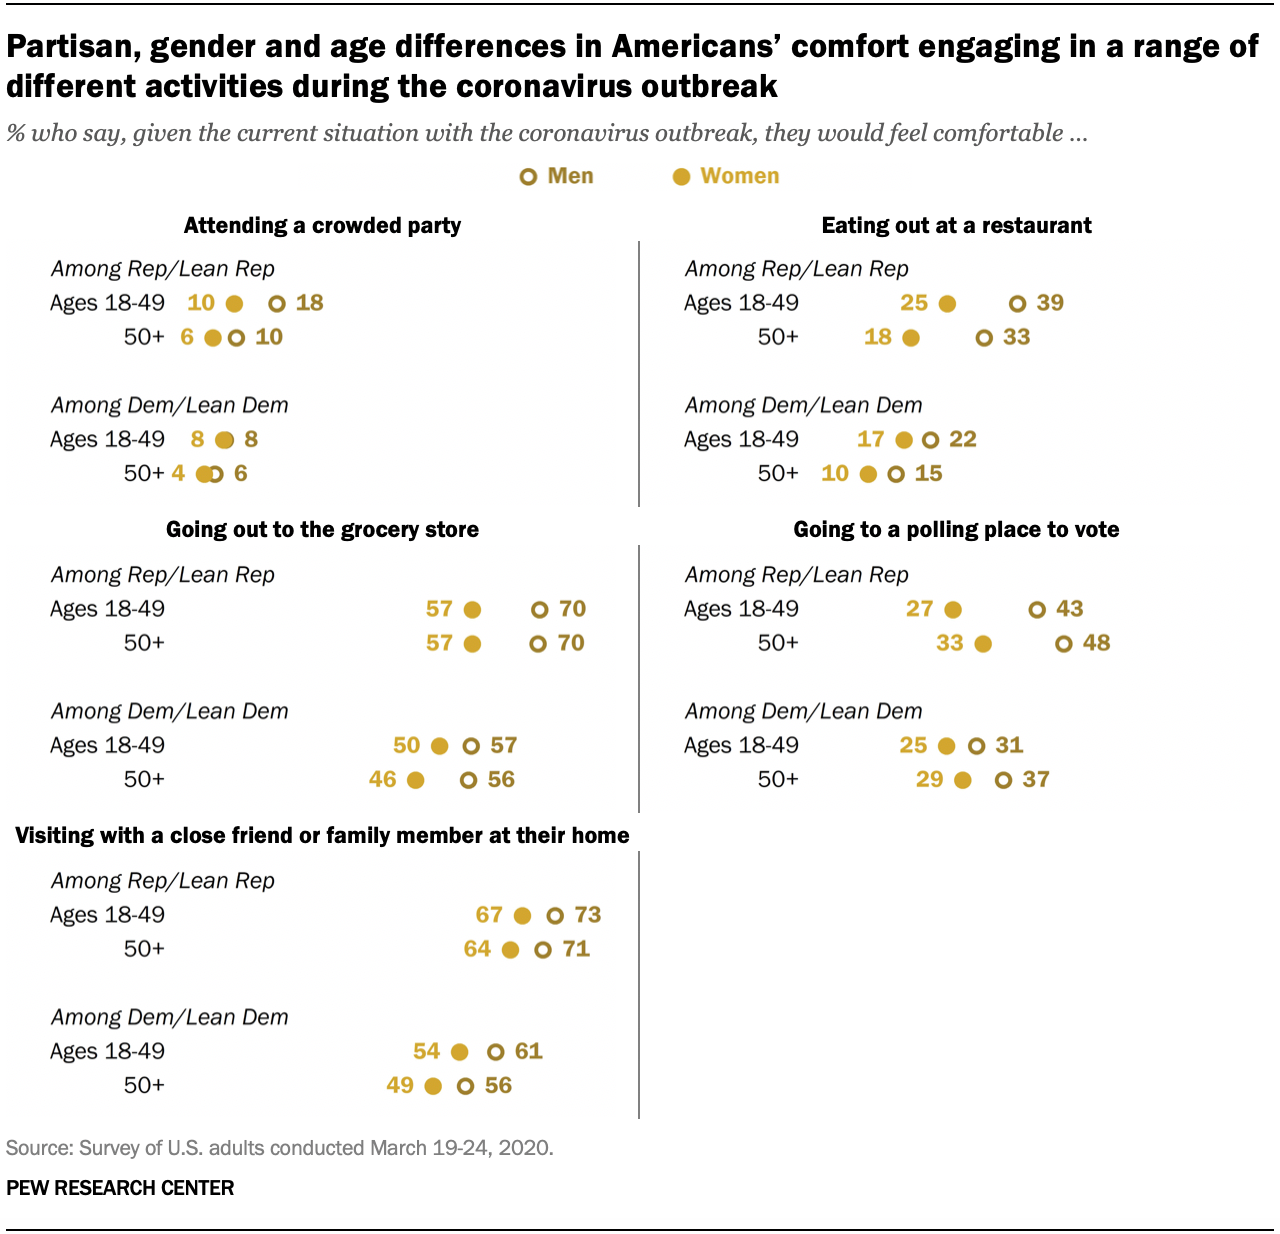 Partisan, gender and age differences in Americans' comfort engaging in a range of different activities during the coronavirus outbreak